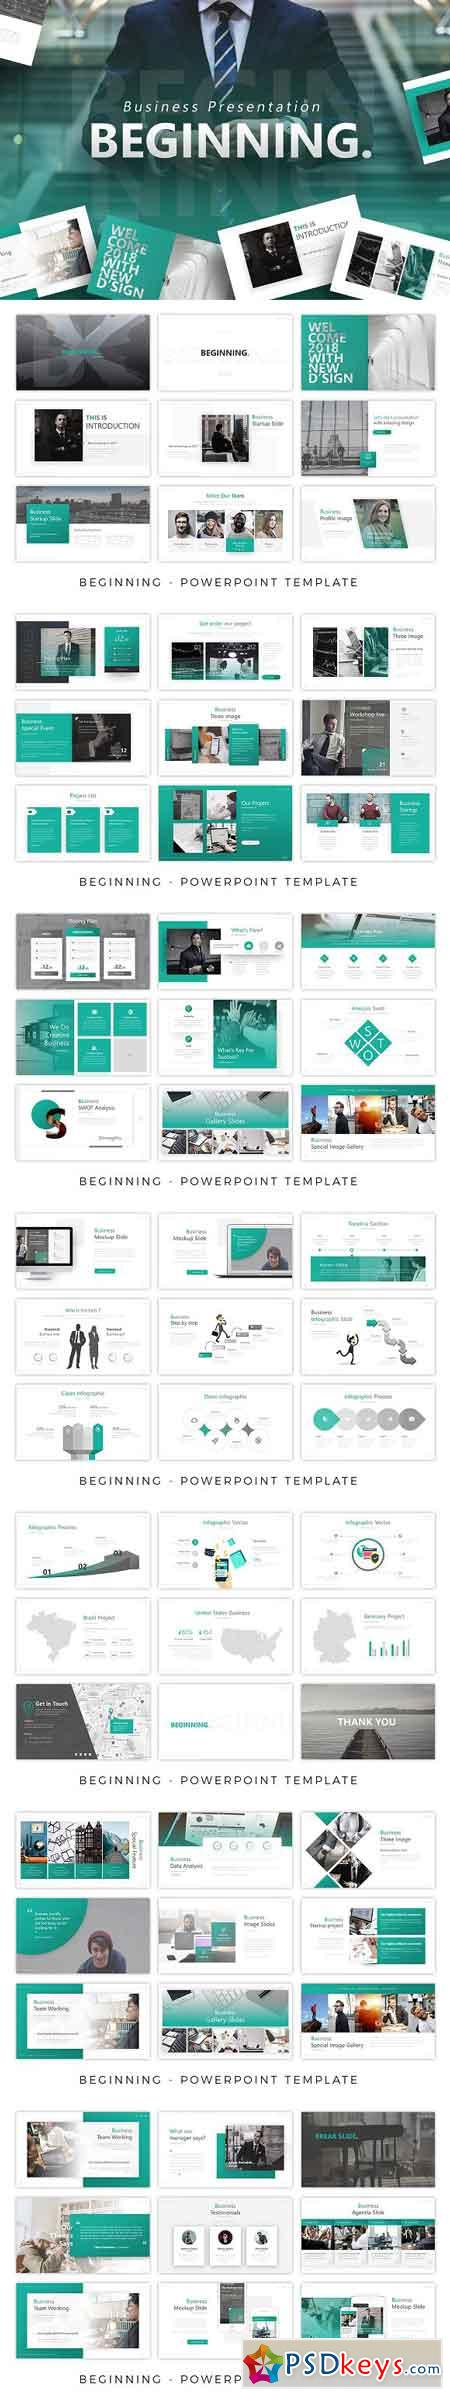 Beginning - Business Presentation 2805105